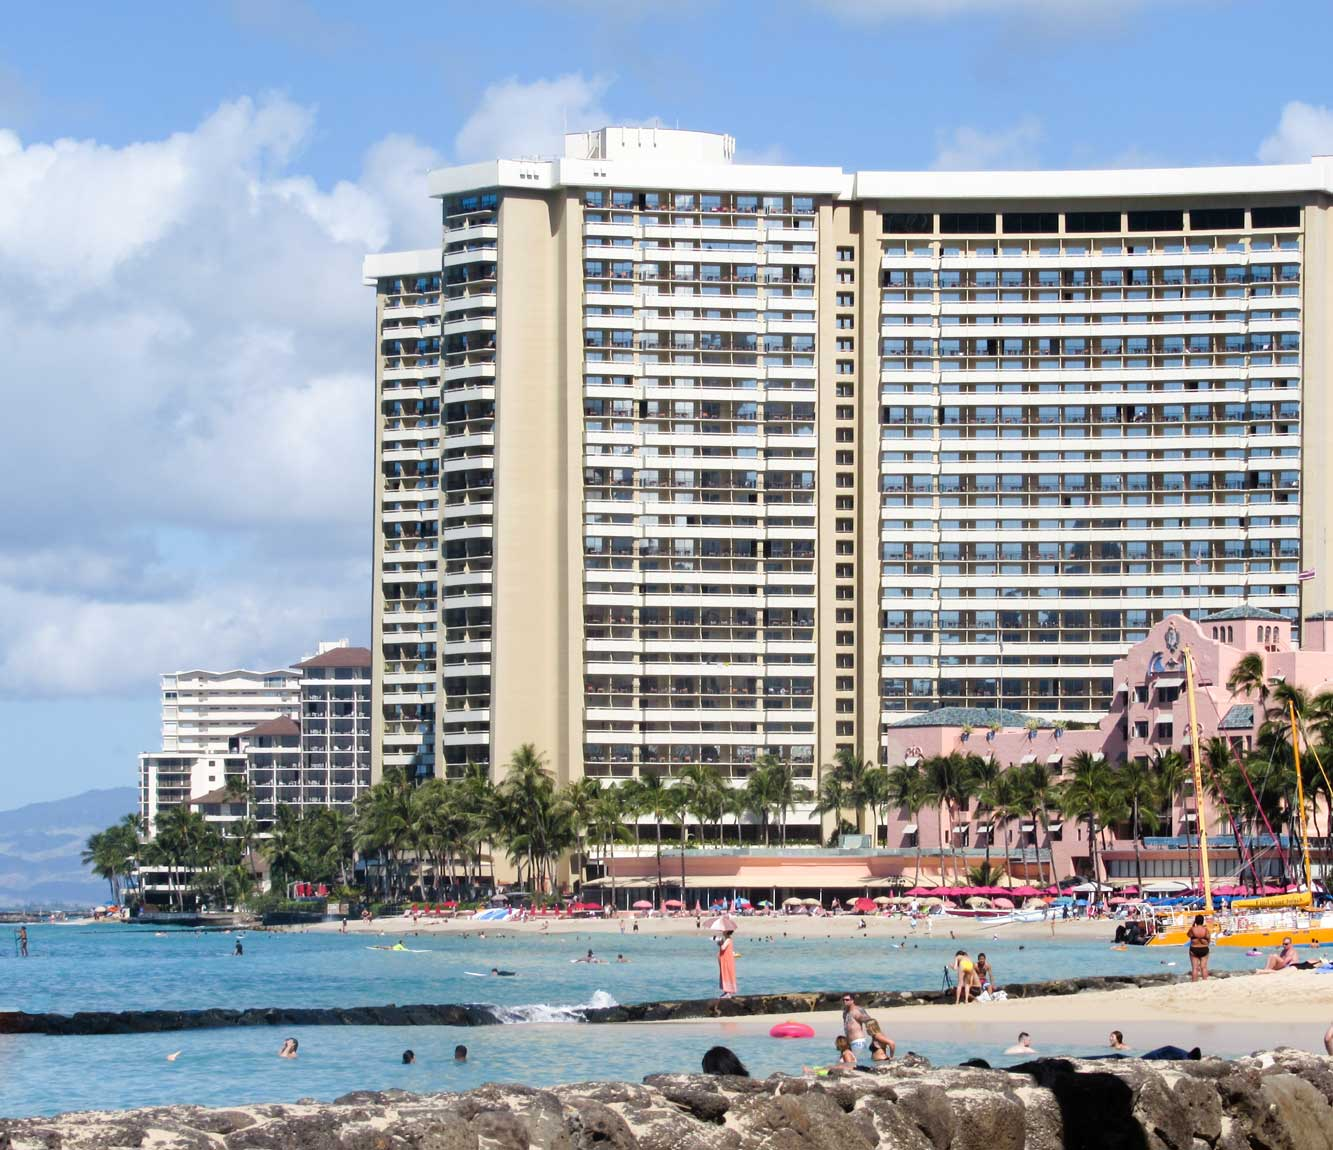 Duke Kahanamoku Lagoon - Honolulu Travel Guide - 45 things to do in Honolulu - Christobel Travel